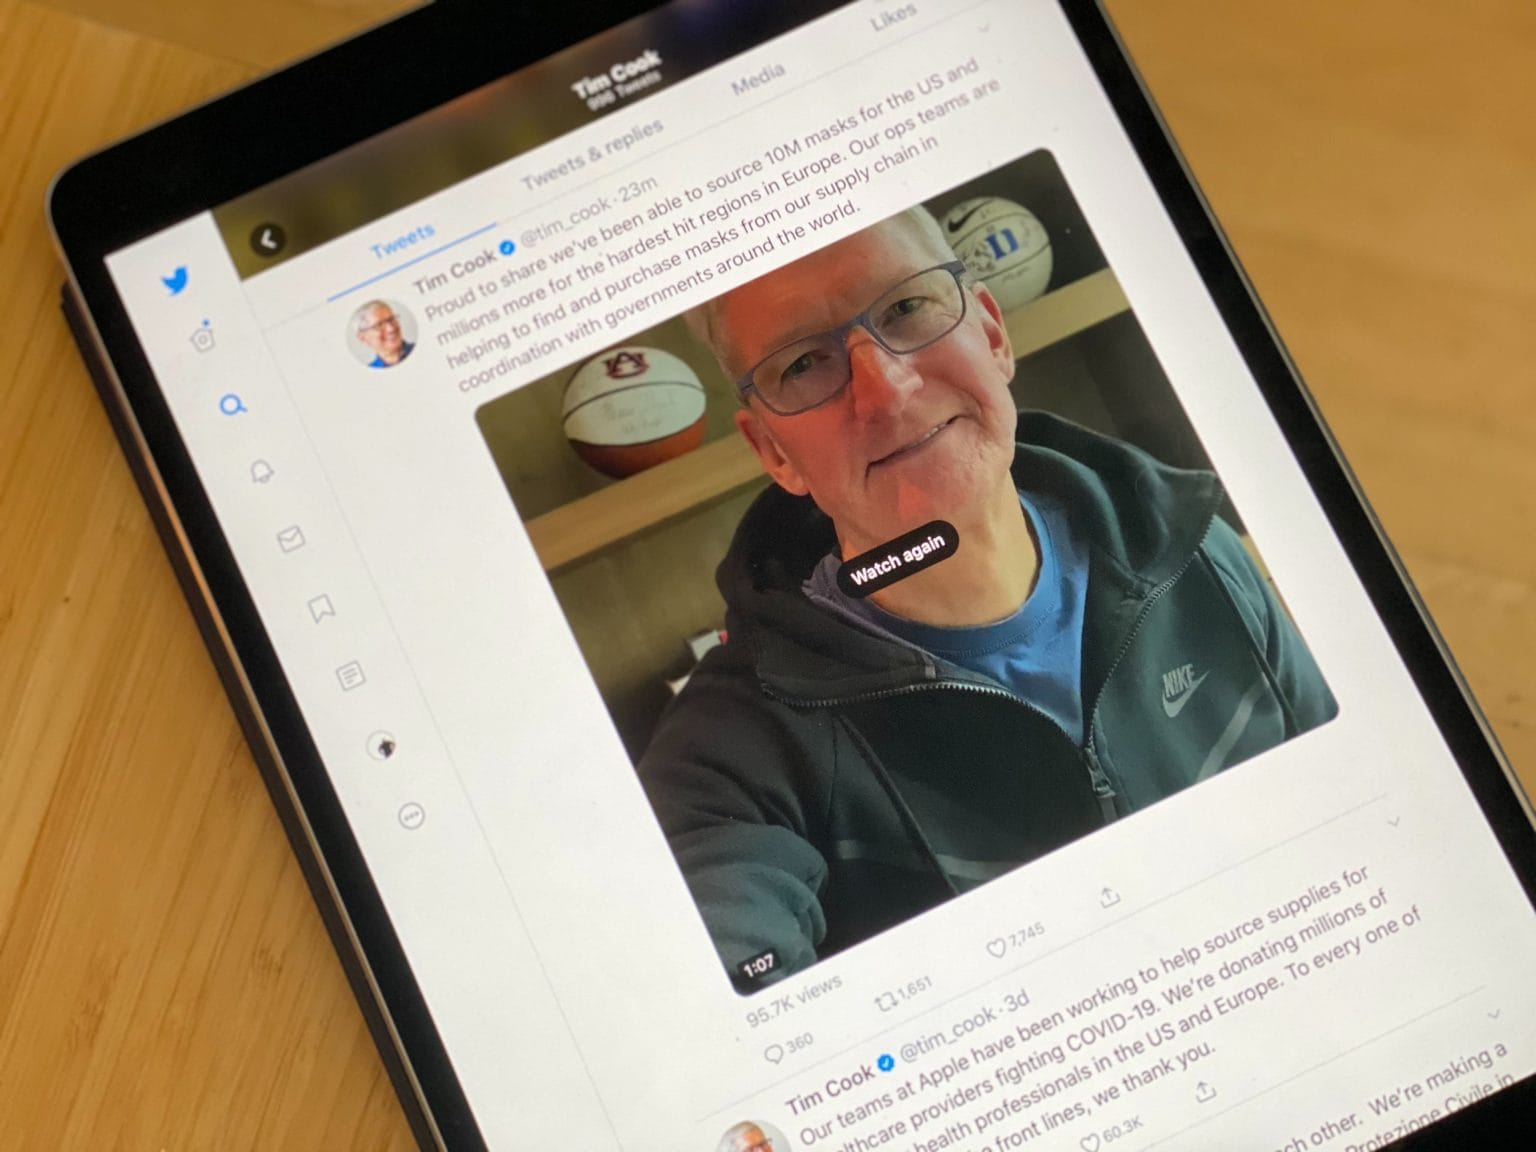 CEO Tim Cook hops on Twitter to offer some coronavirus advice and talk about Apple's mask donations.